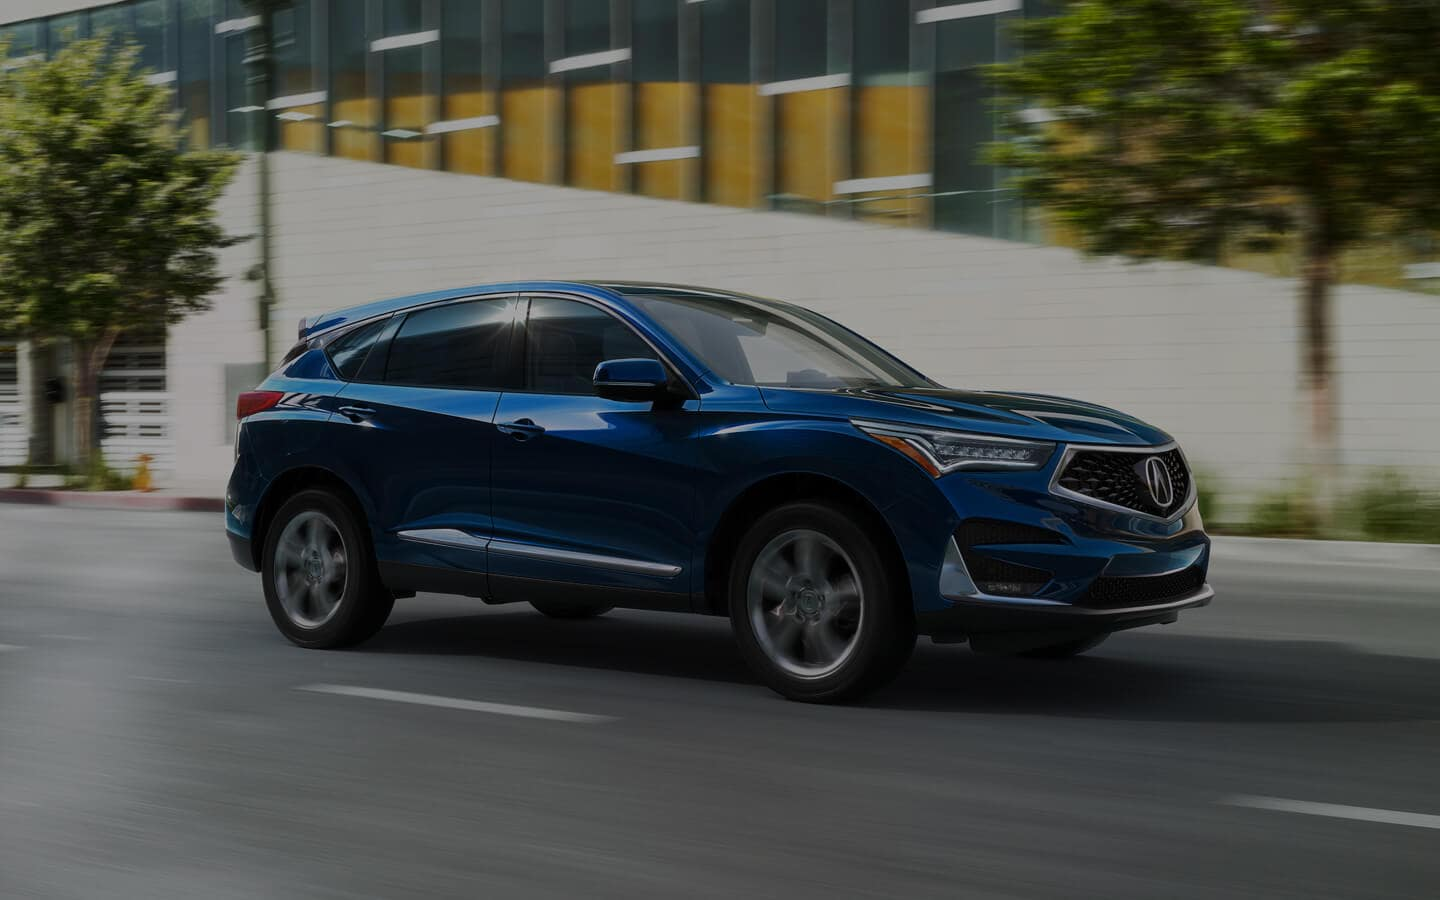 2019 Acura RDX from Your Puget Sound Acura Dealers